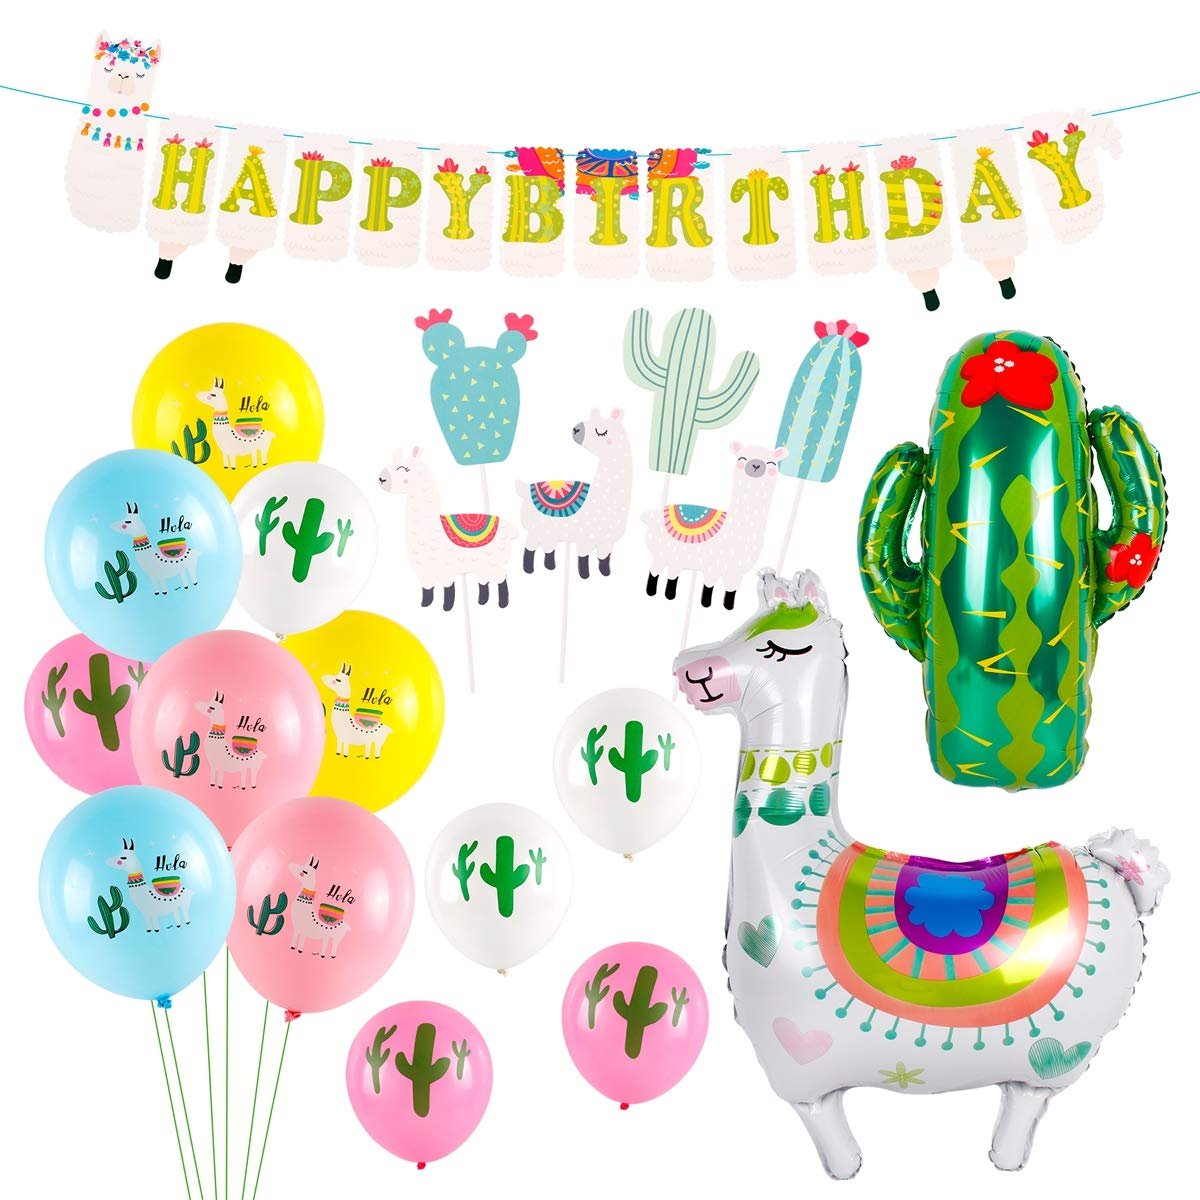 e1b2d0aff7cda Llama Party Supplies, Birthday Party Decorations with Large Llama Cactus  Foil Balloons, Latex Balloons, Cupcake Topper, Happy Birthday Banner for  Baby ...